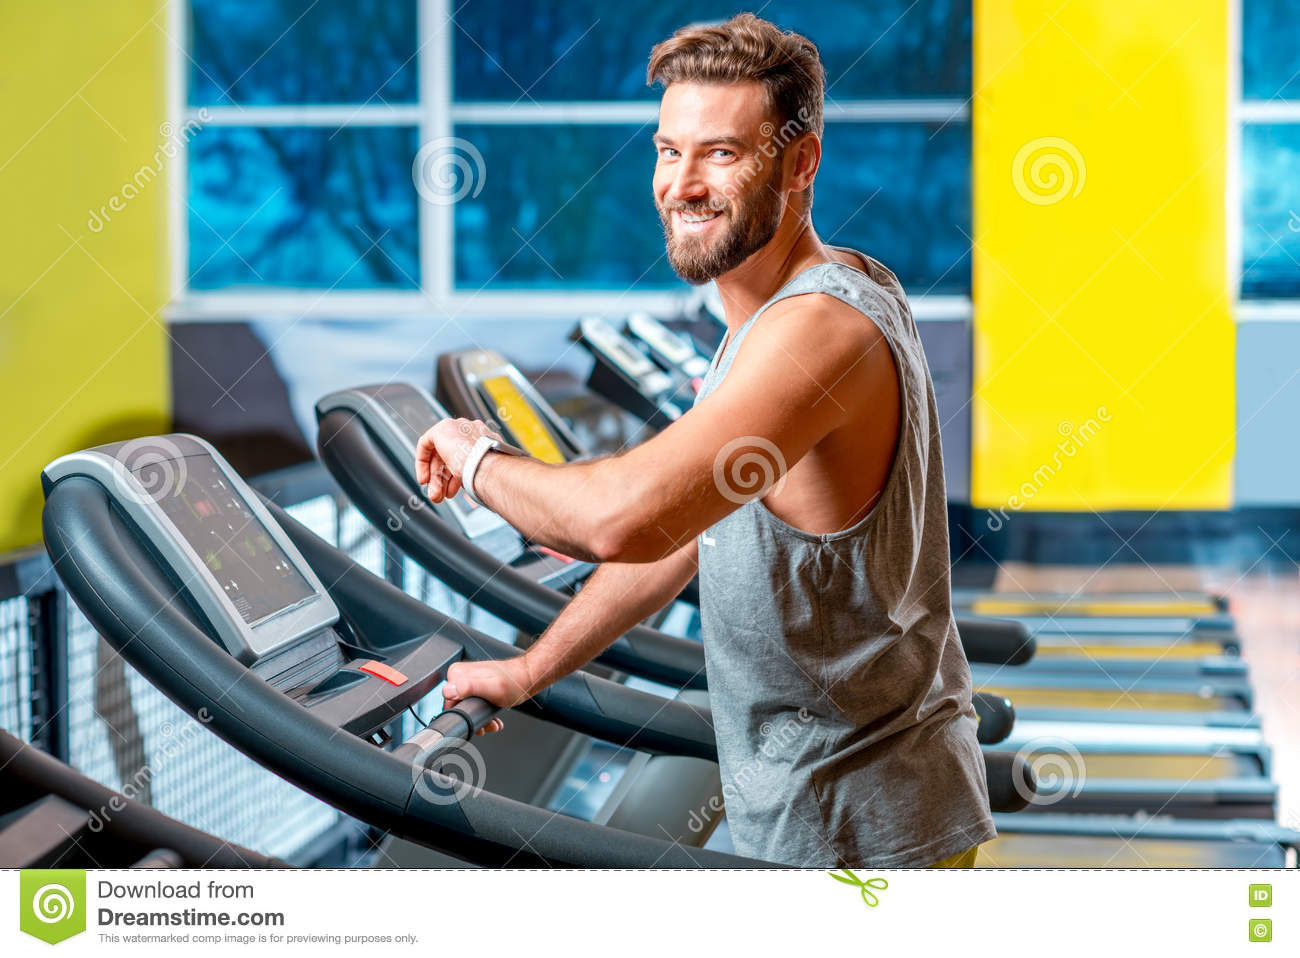 Download Cardio Workout In The Gym Stock Image Of Looking